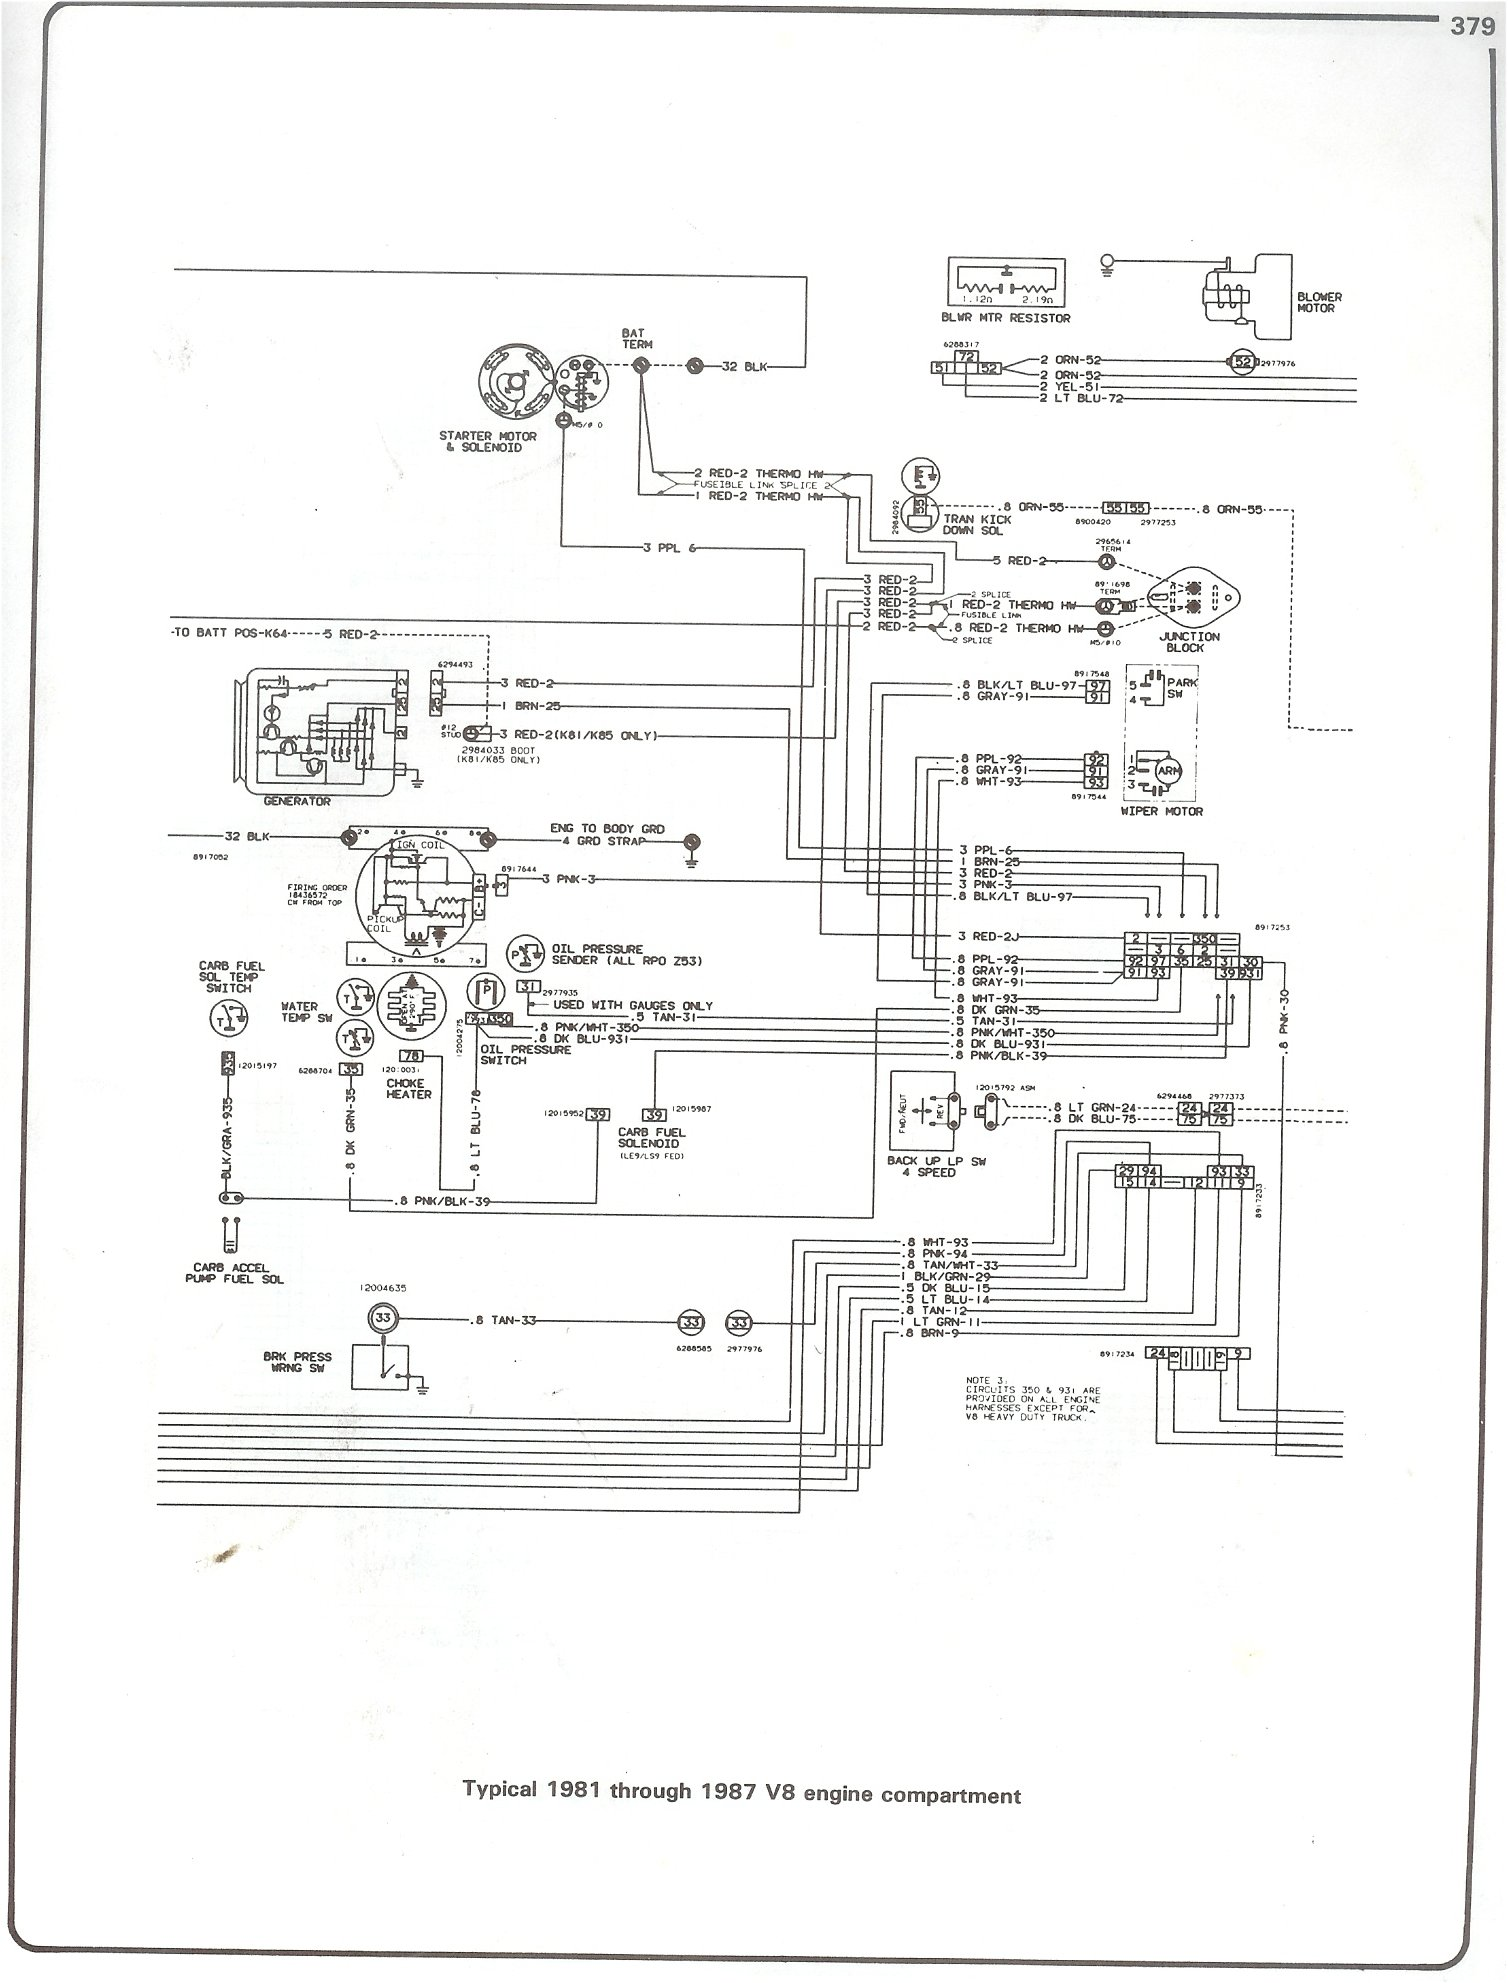 1974 Chevy C10 Wiring Schematics Opinions About Wiring Diagram \u2022 1973  Chevy C10 Wiring Diagram 1974 Chevy C10 Wiring Diagram